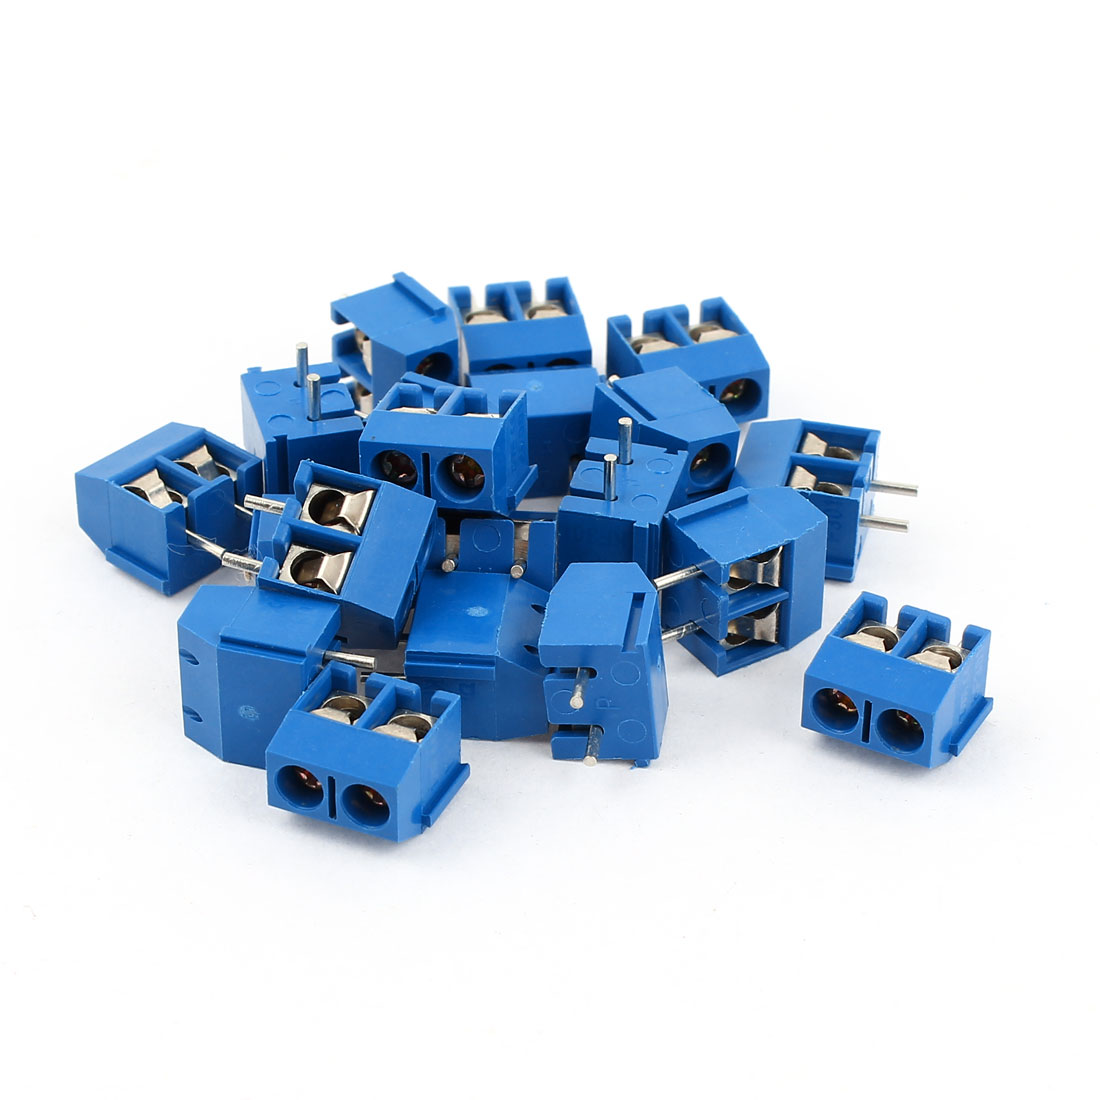 20 Pcs 5.08mm Pitch 2Pin Pluggable Type PCB Screw Terminal Block Connectors Blue